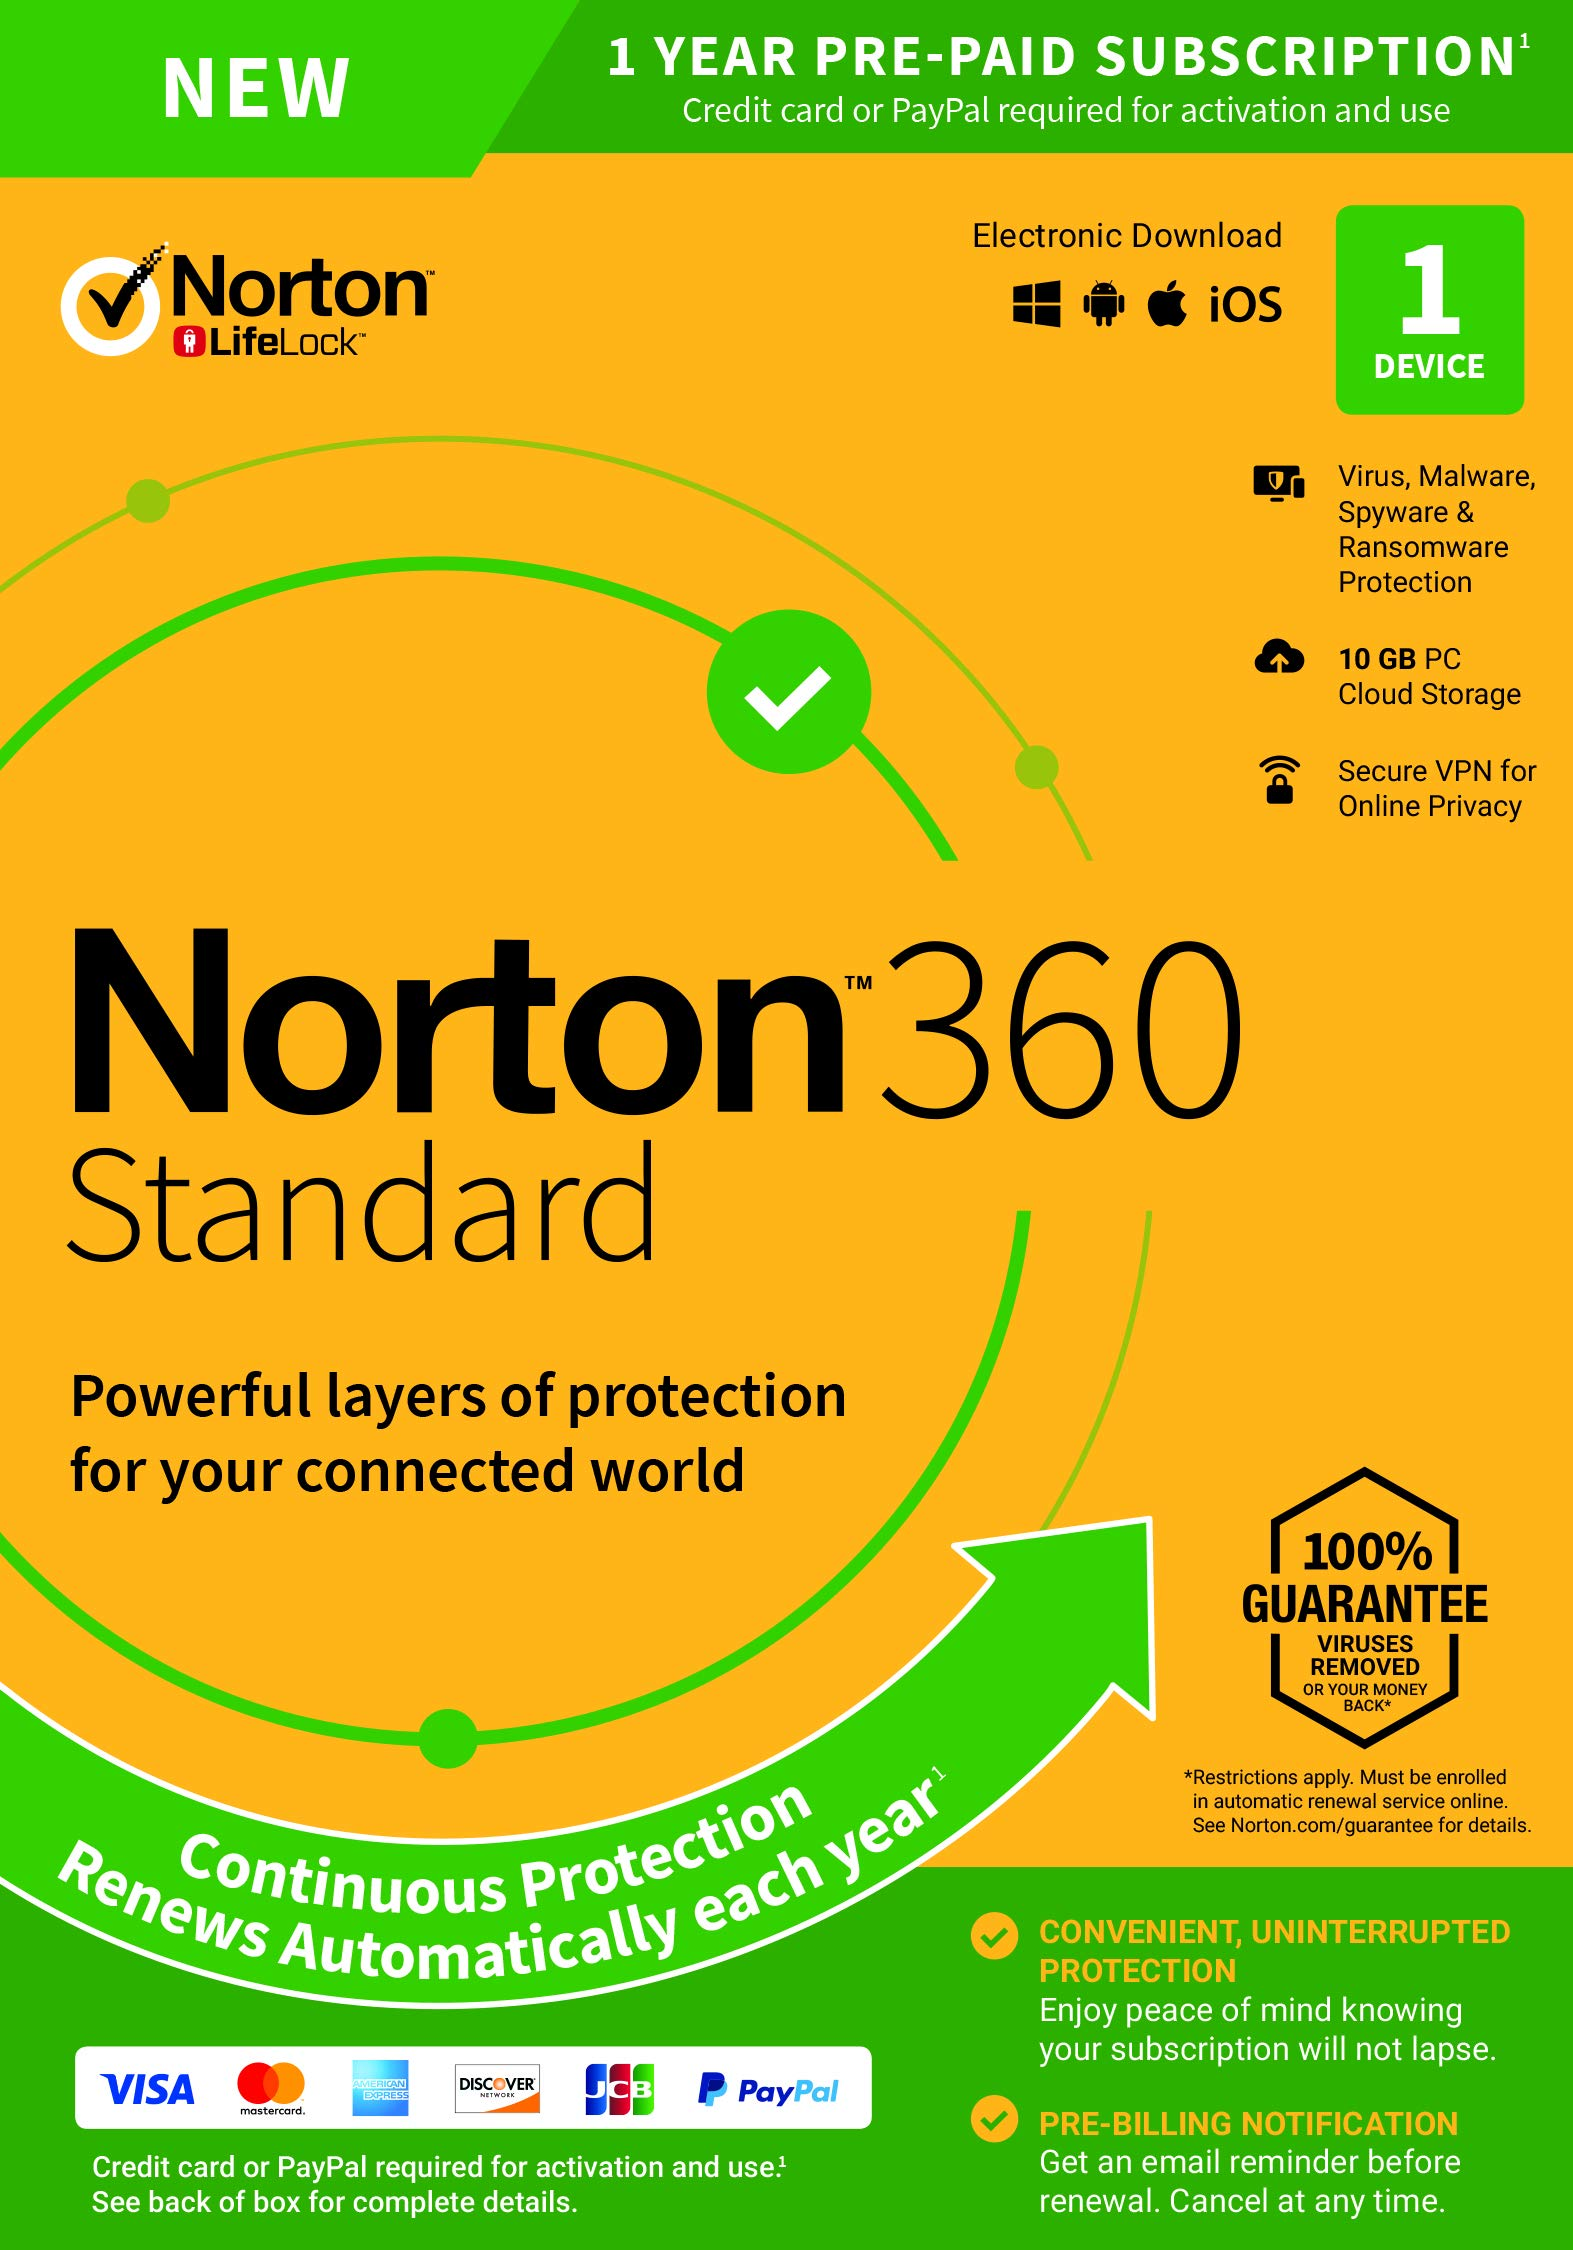 NEW Norton 360 Standard - Antivirus software for 1 Device with Auto Renewal - Includes VPN, PC  Cloud Backup & Dark Web Monitoring powered by LifeLock [PC/Mac/Mobile Key Card] by Symantec